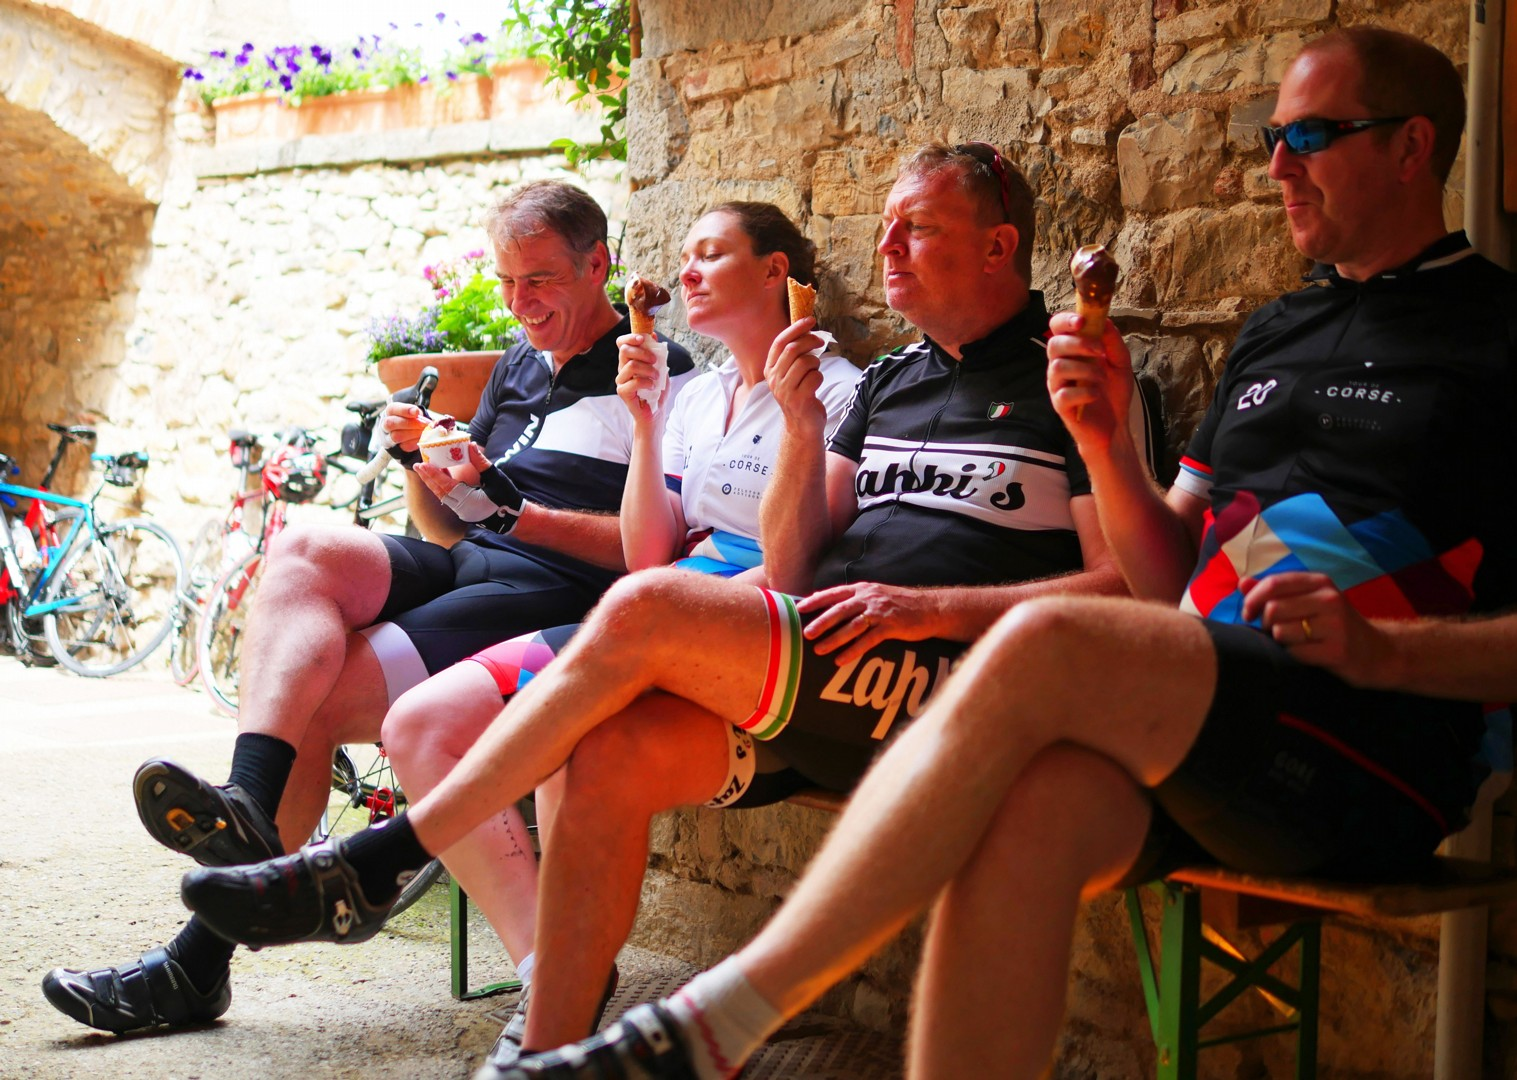 team-gelato-guided-italy-holiday.jpg - Italy - Tuscany Tourer - Road Cycling